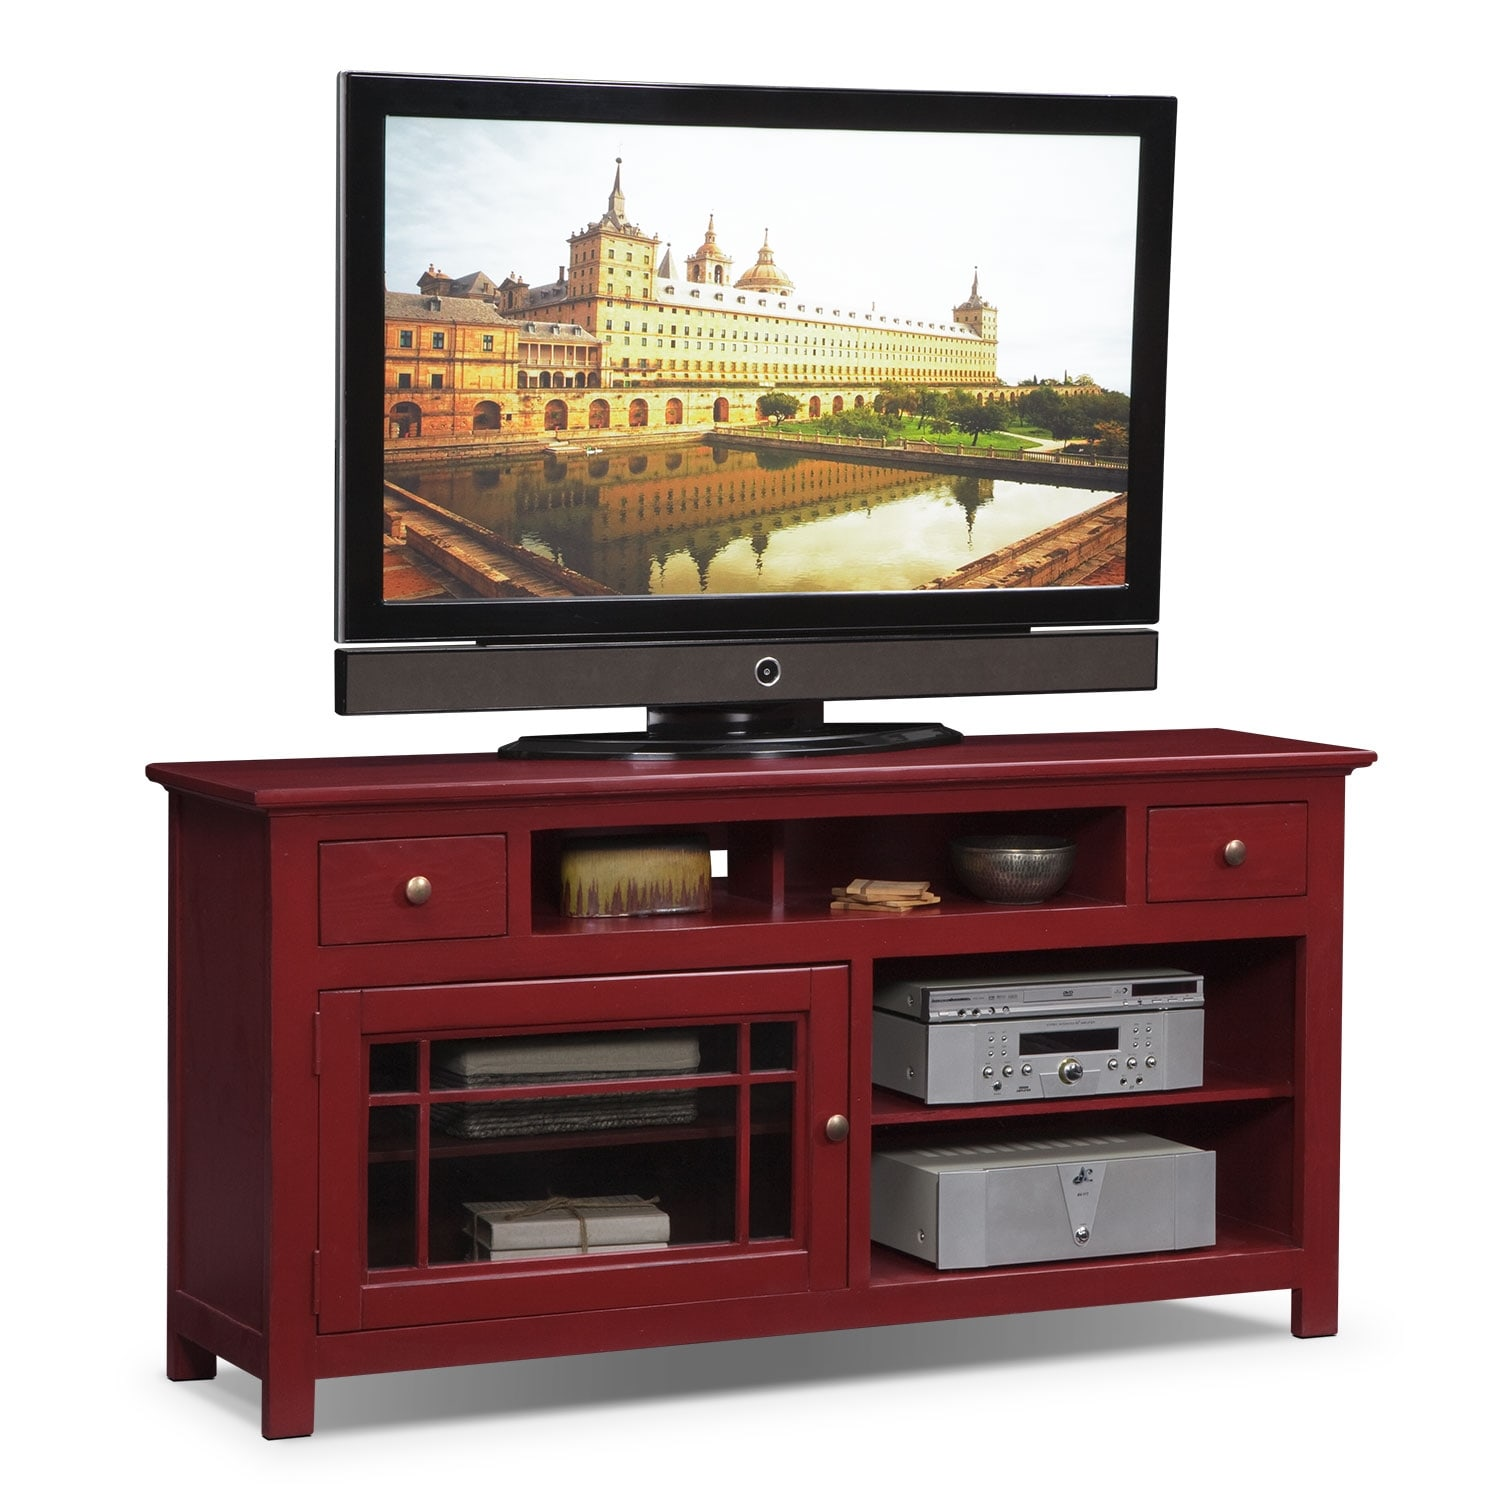 "American Pride Furniture Tv Stand: Merrick 64"" TV Stand - Red"